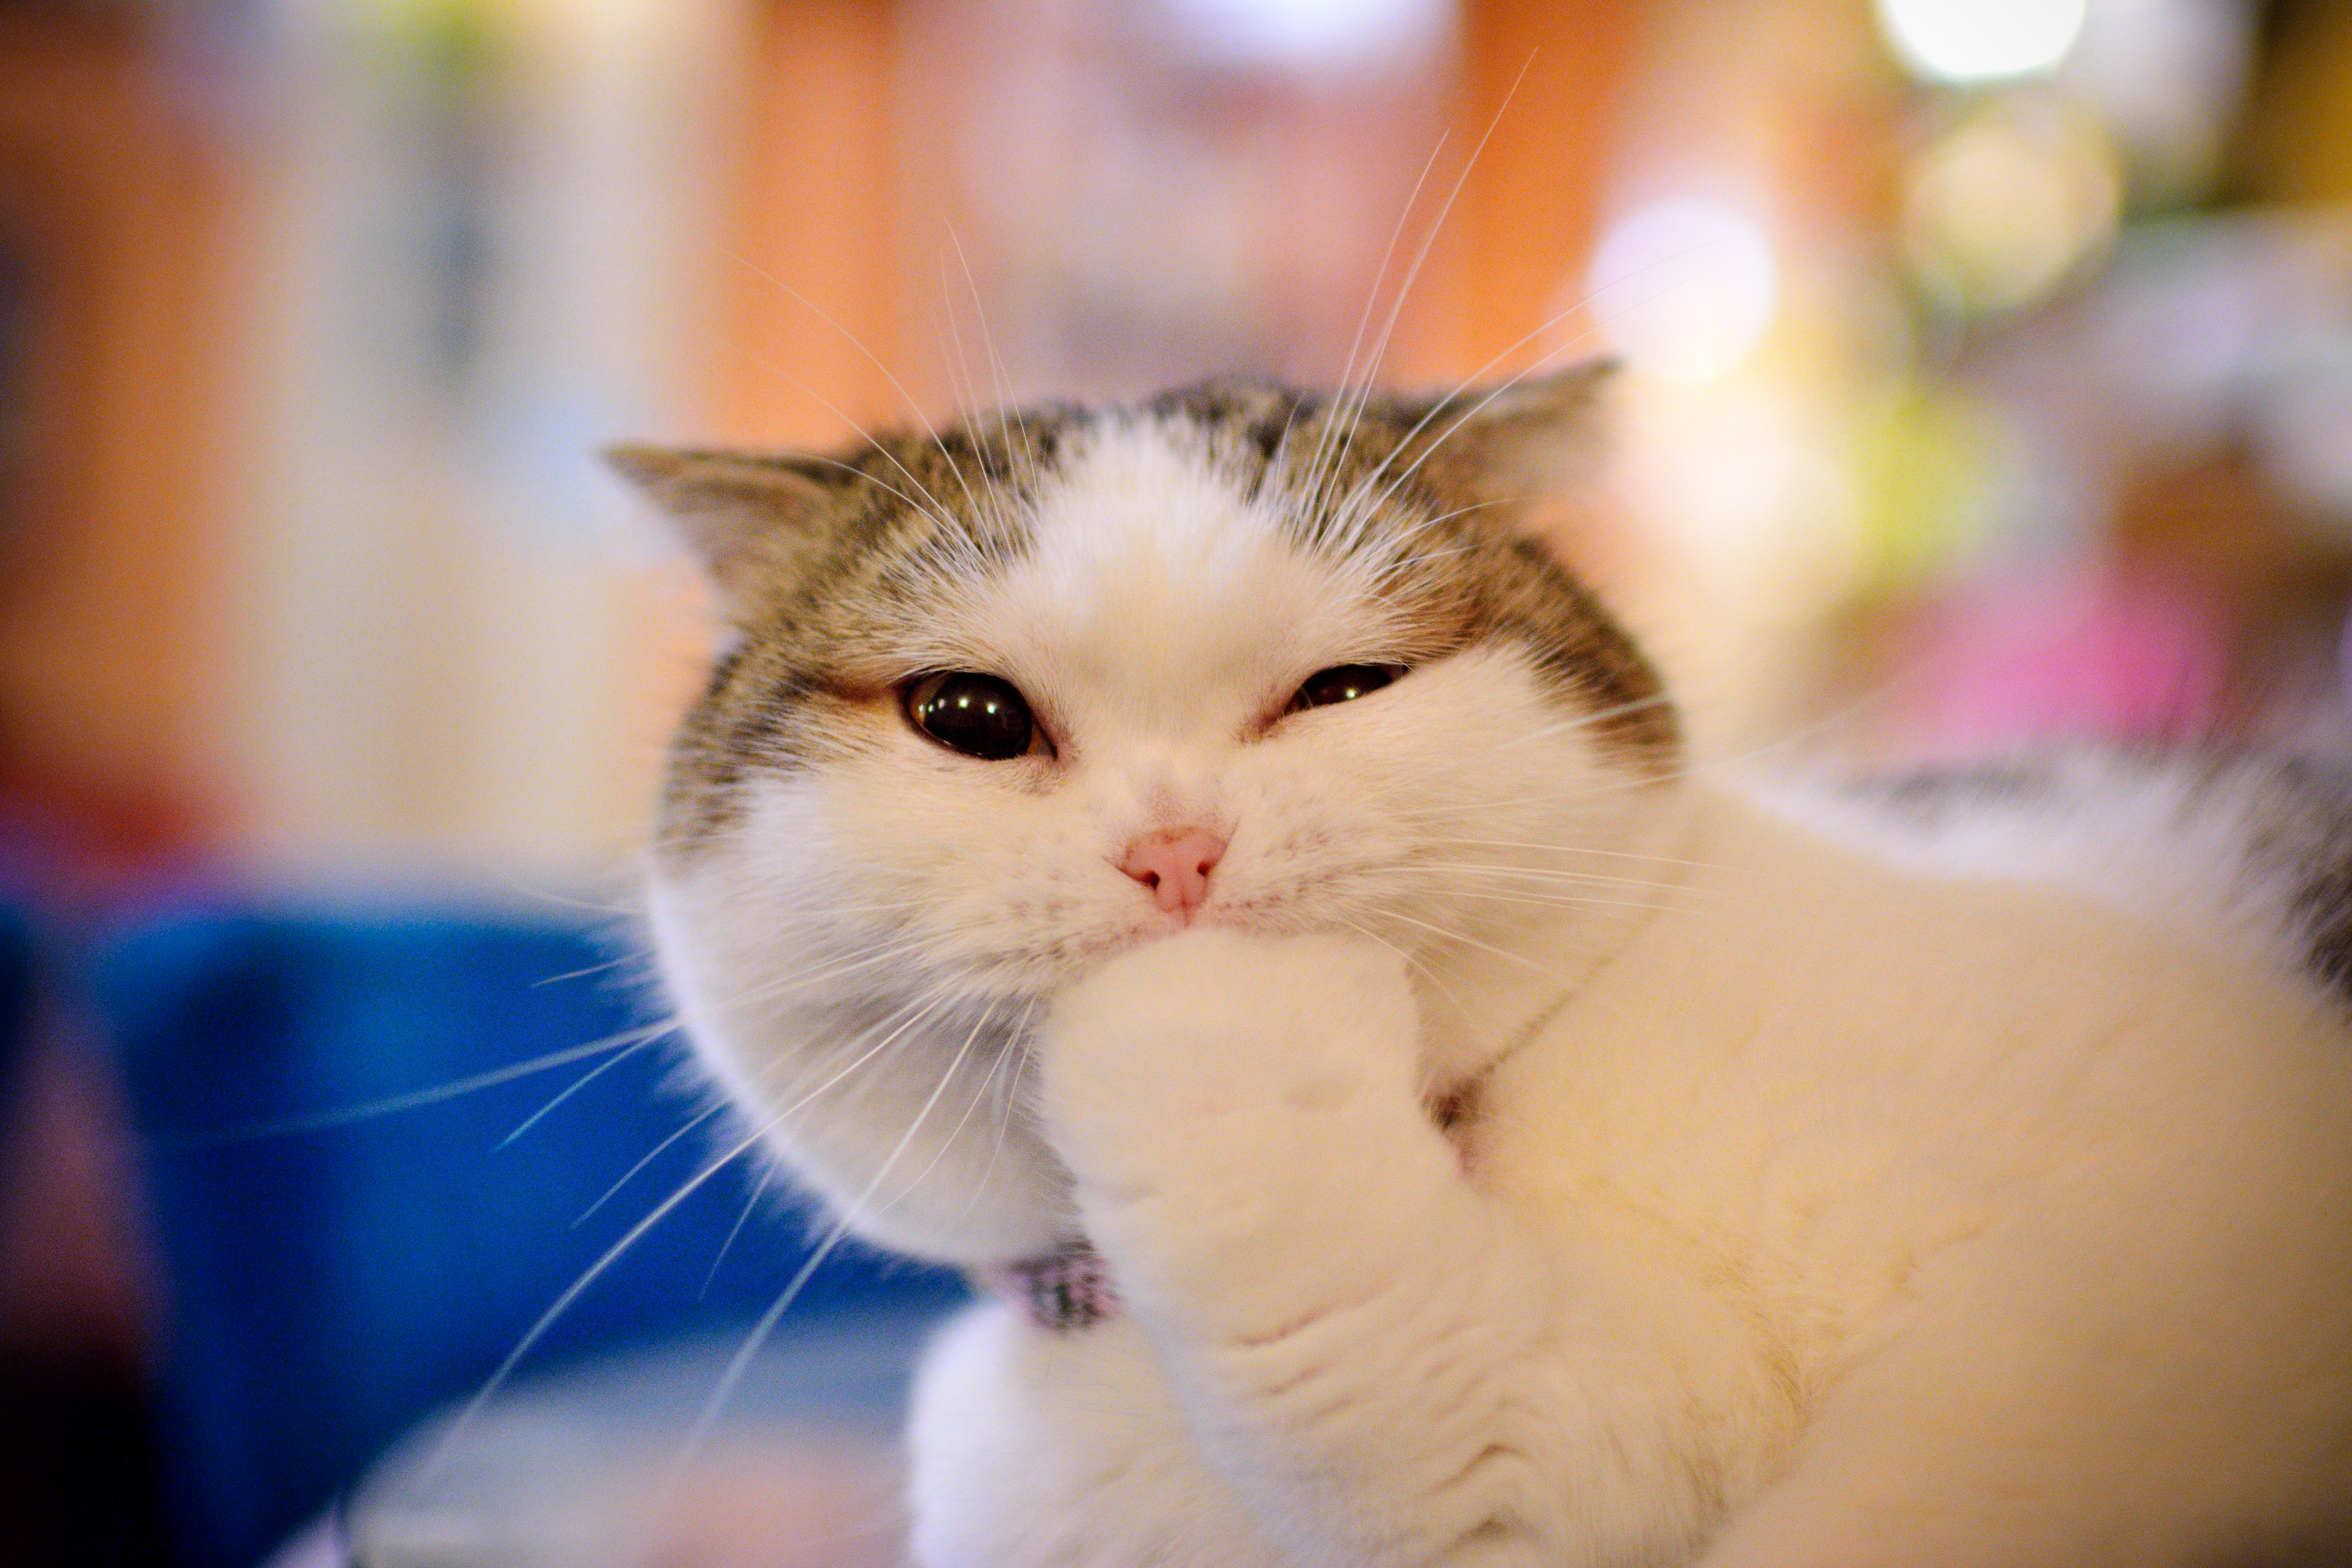 83581 download wallpaper Animals, Cat, Muzzle, Nice, Sweetheart, Emotions, Paw screensavers and pictures for free